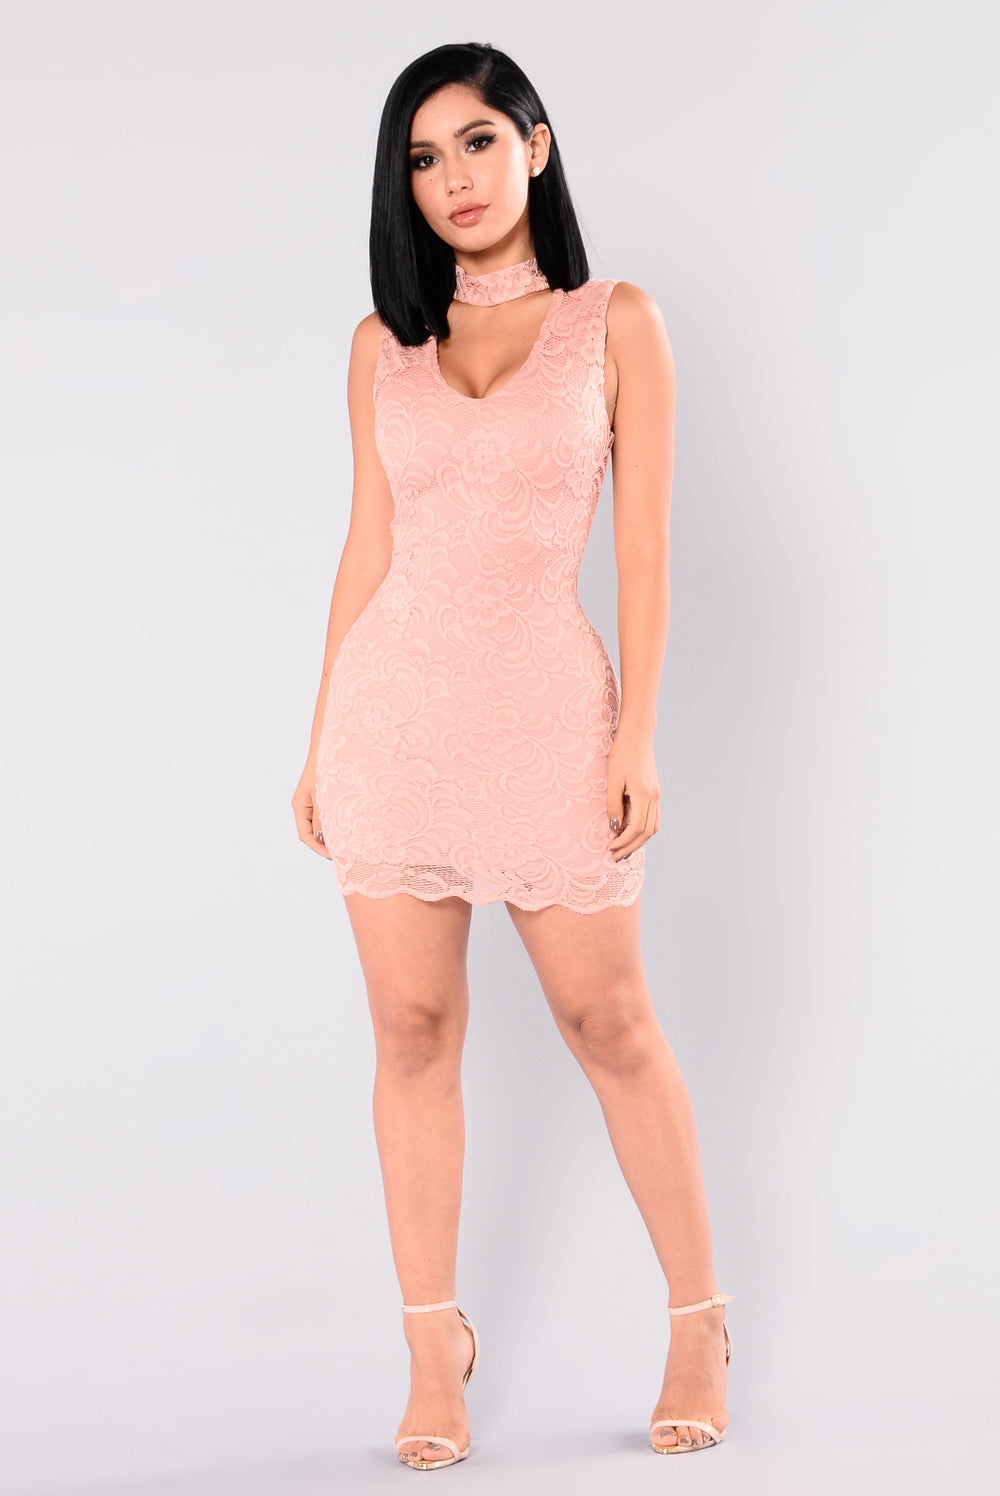 Silvia Lace Dress - Mauve